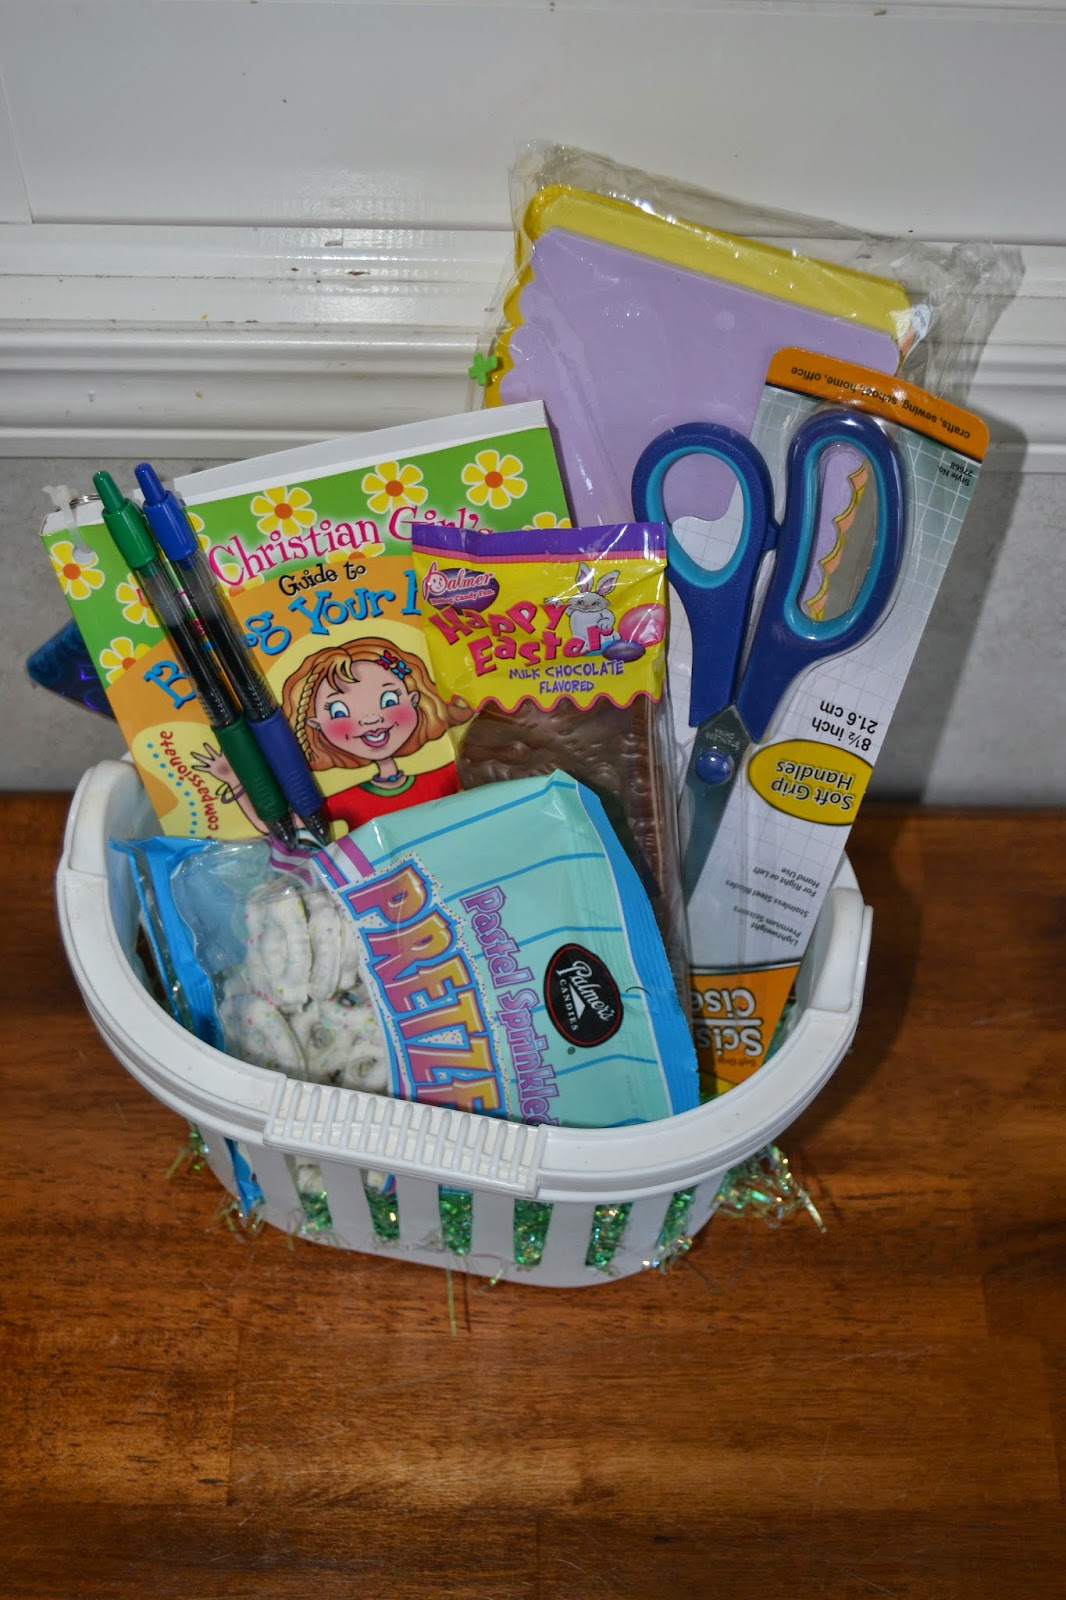 Cassel crew last easter basket ideas its like a guide to life that covers some important topics chapters are what is being your best use your talents do your best negle Gallery